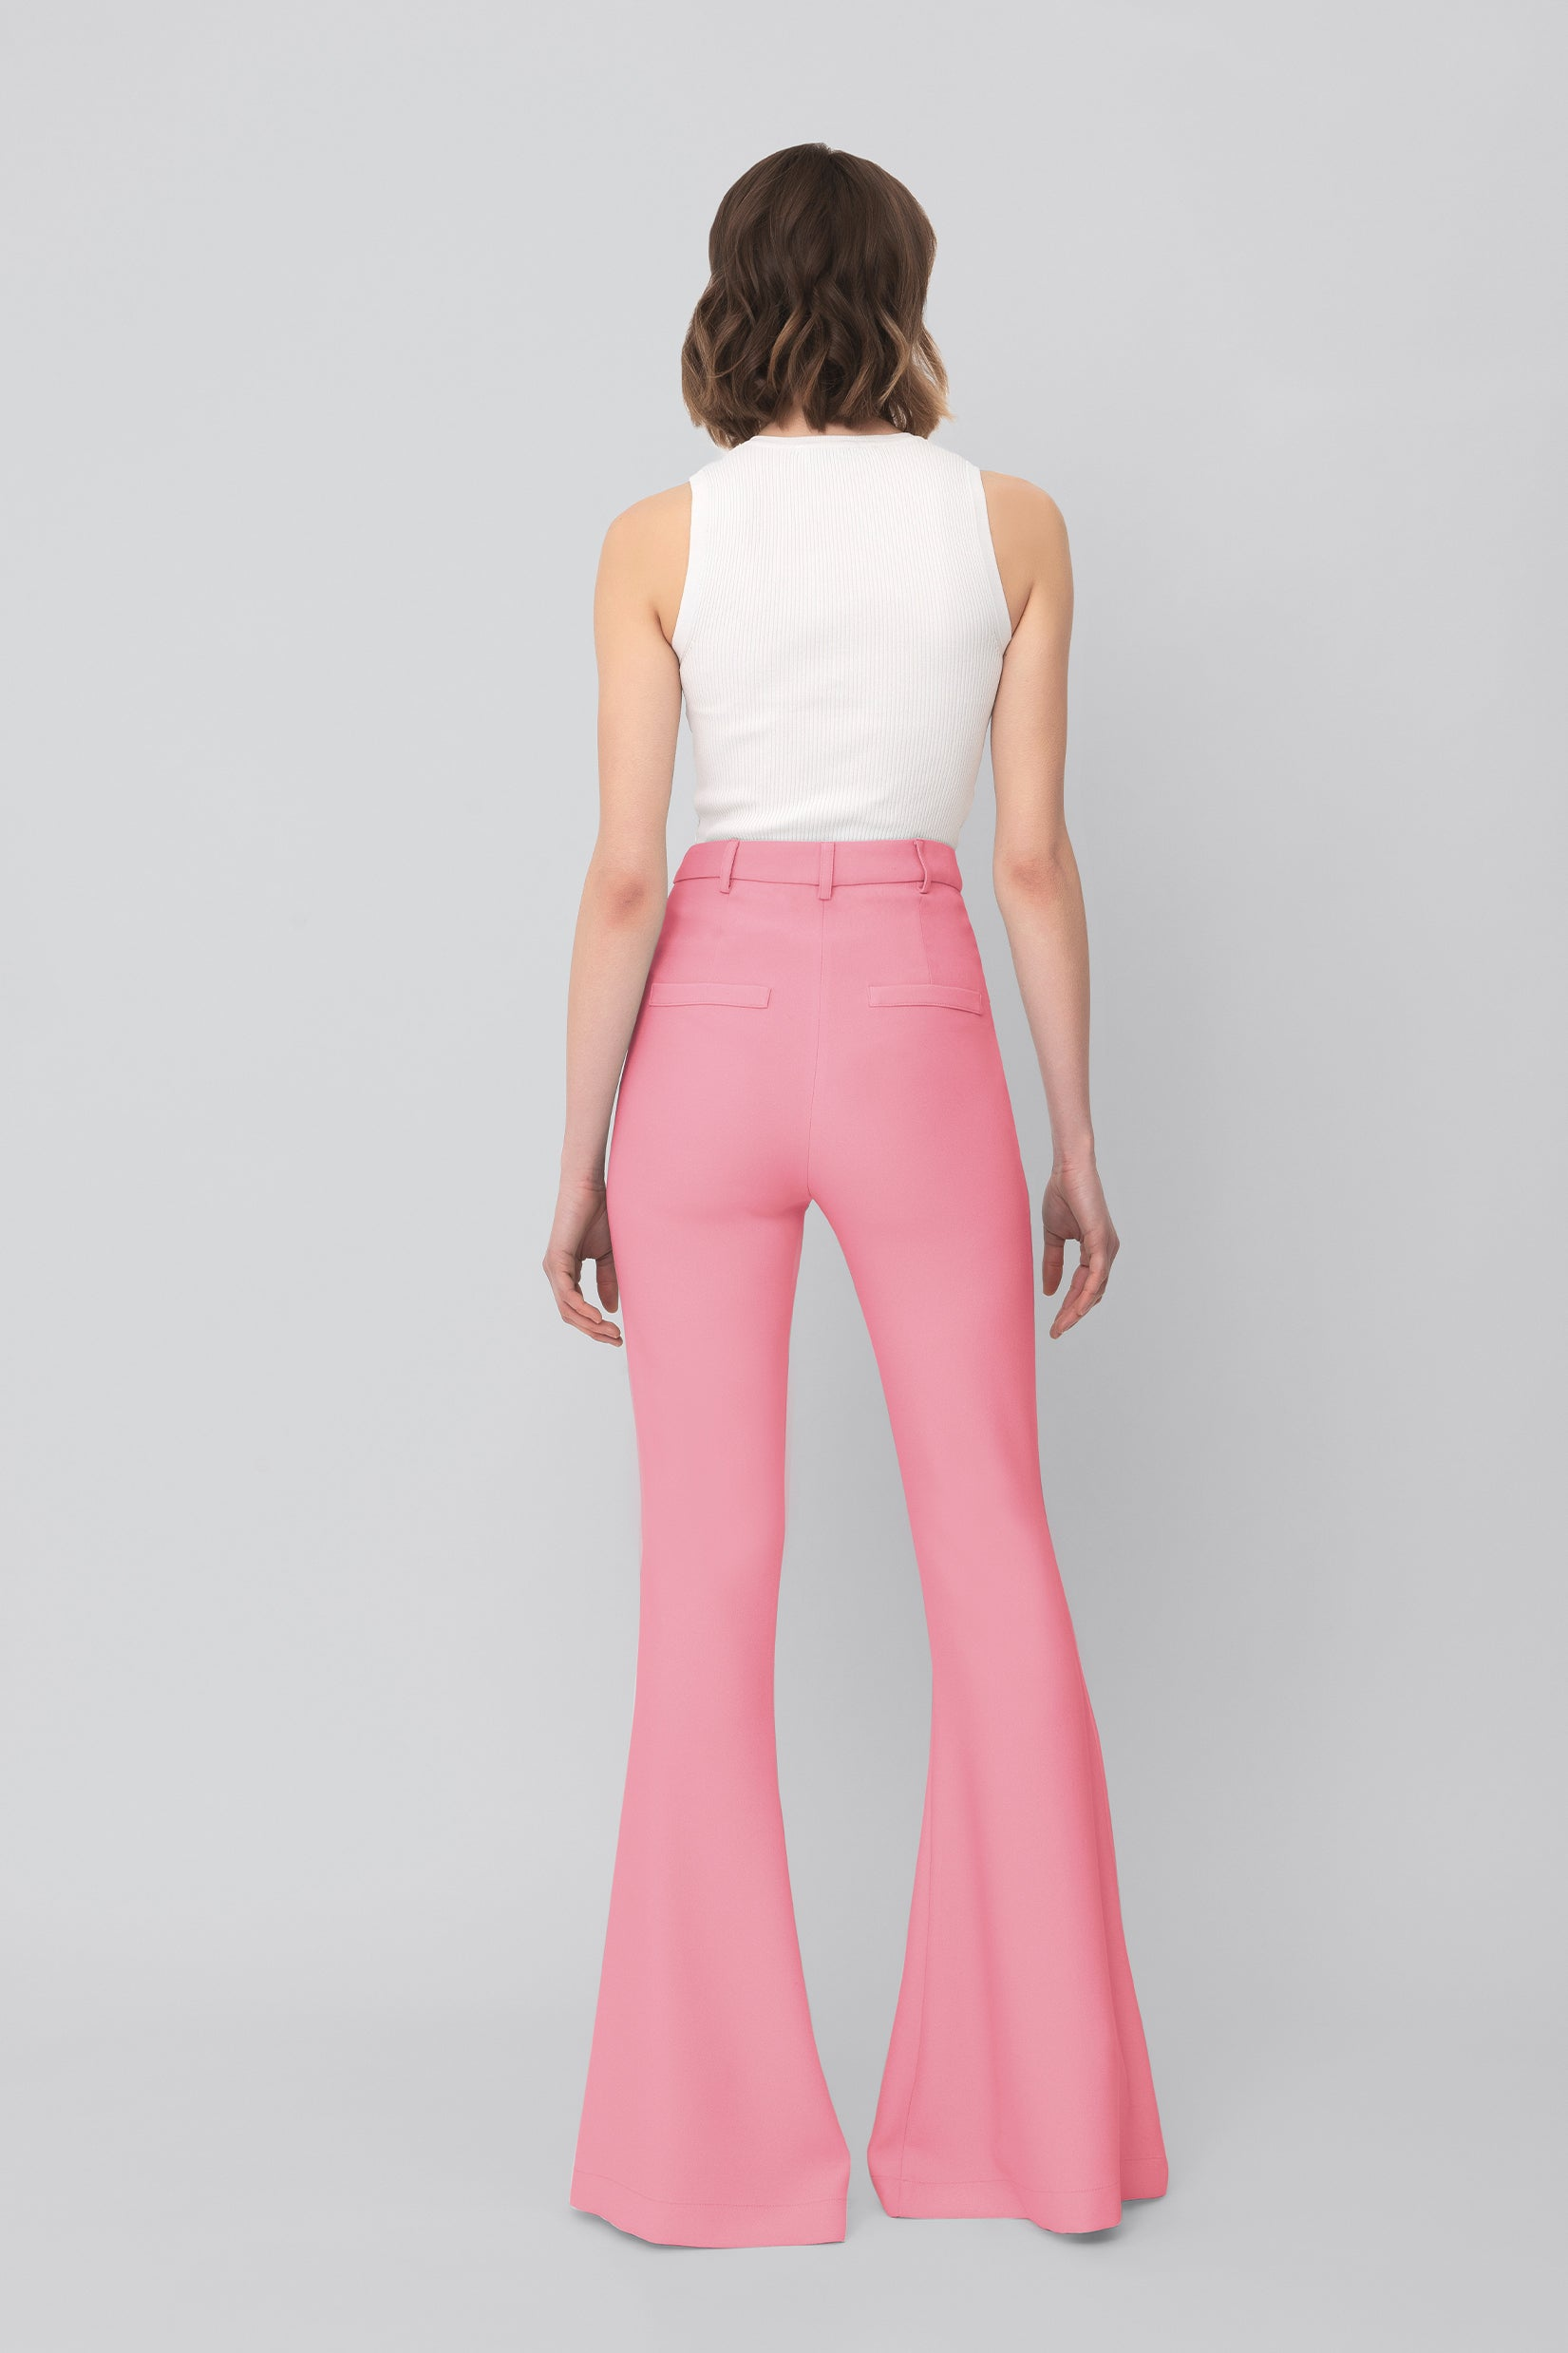 The Pink Bianca Pants